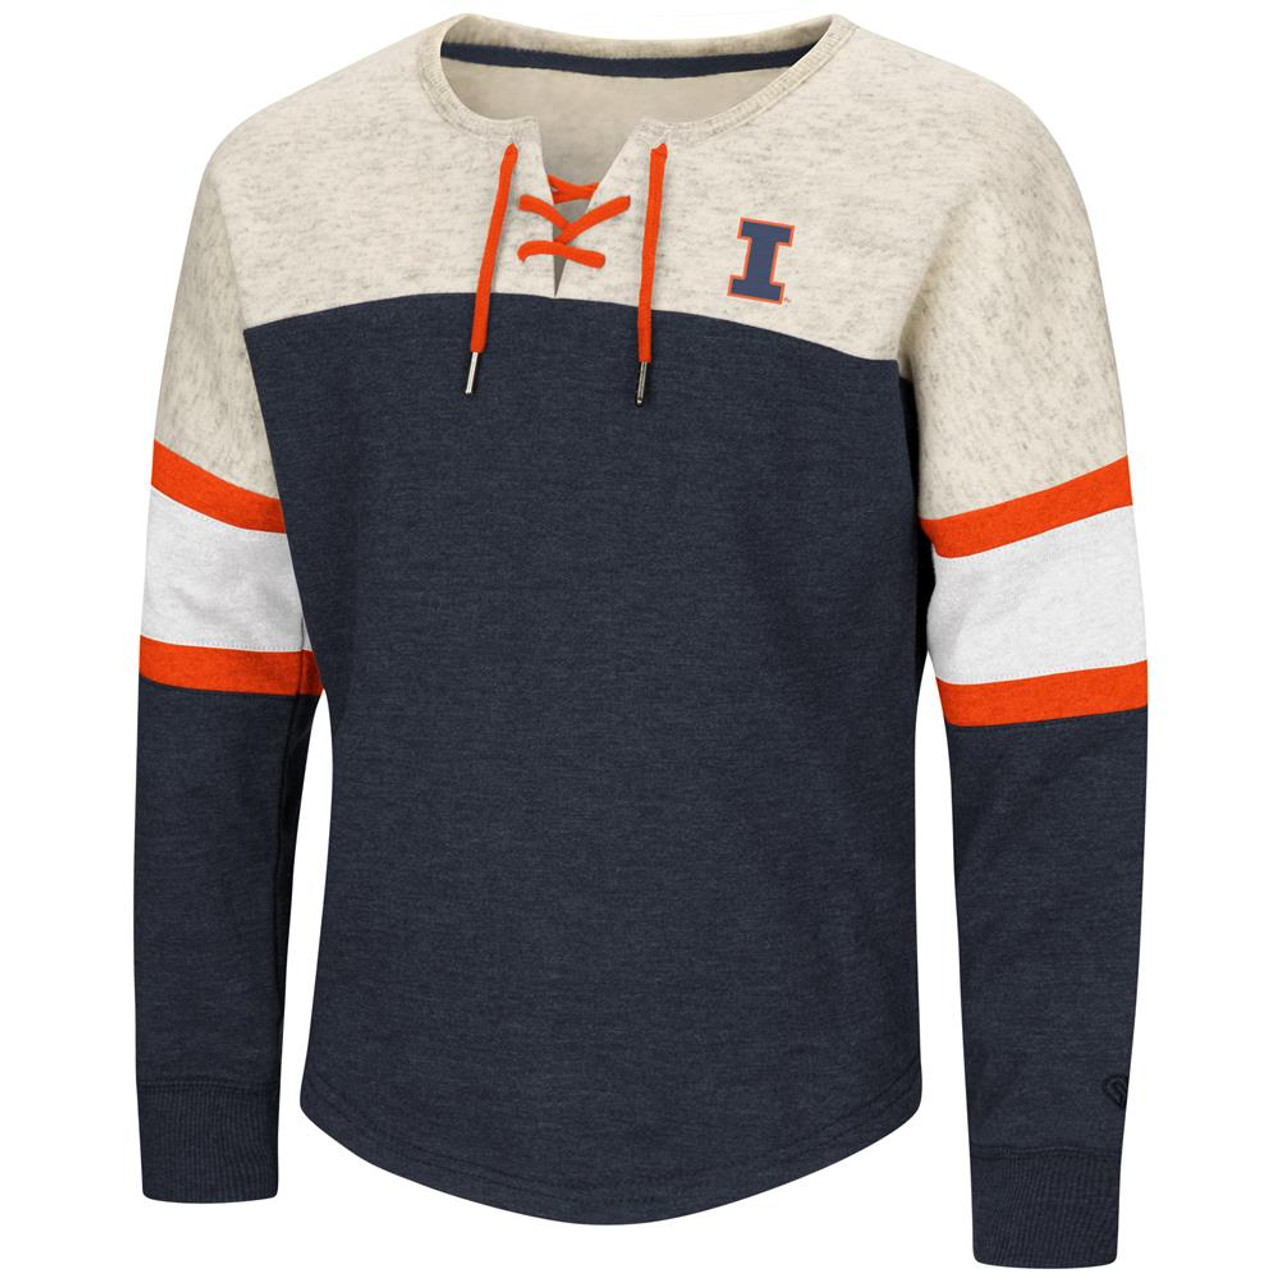 University of Illinois Girls Sweatshirt Oversized Pullover